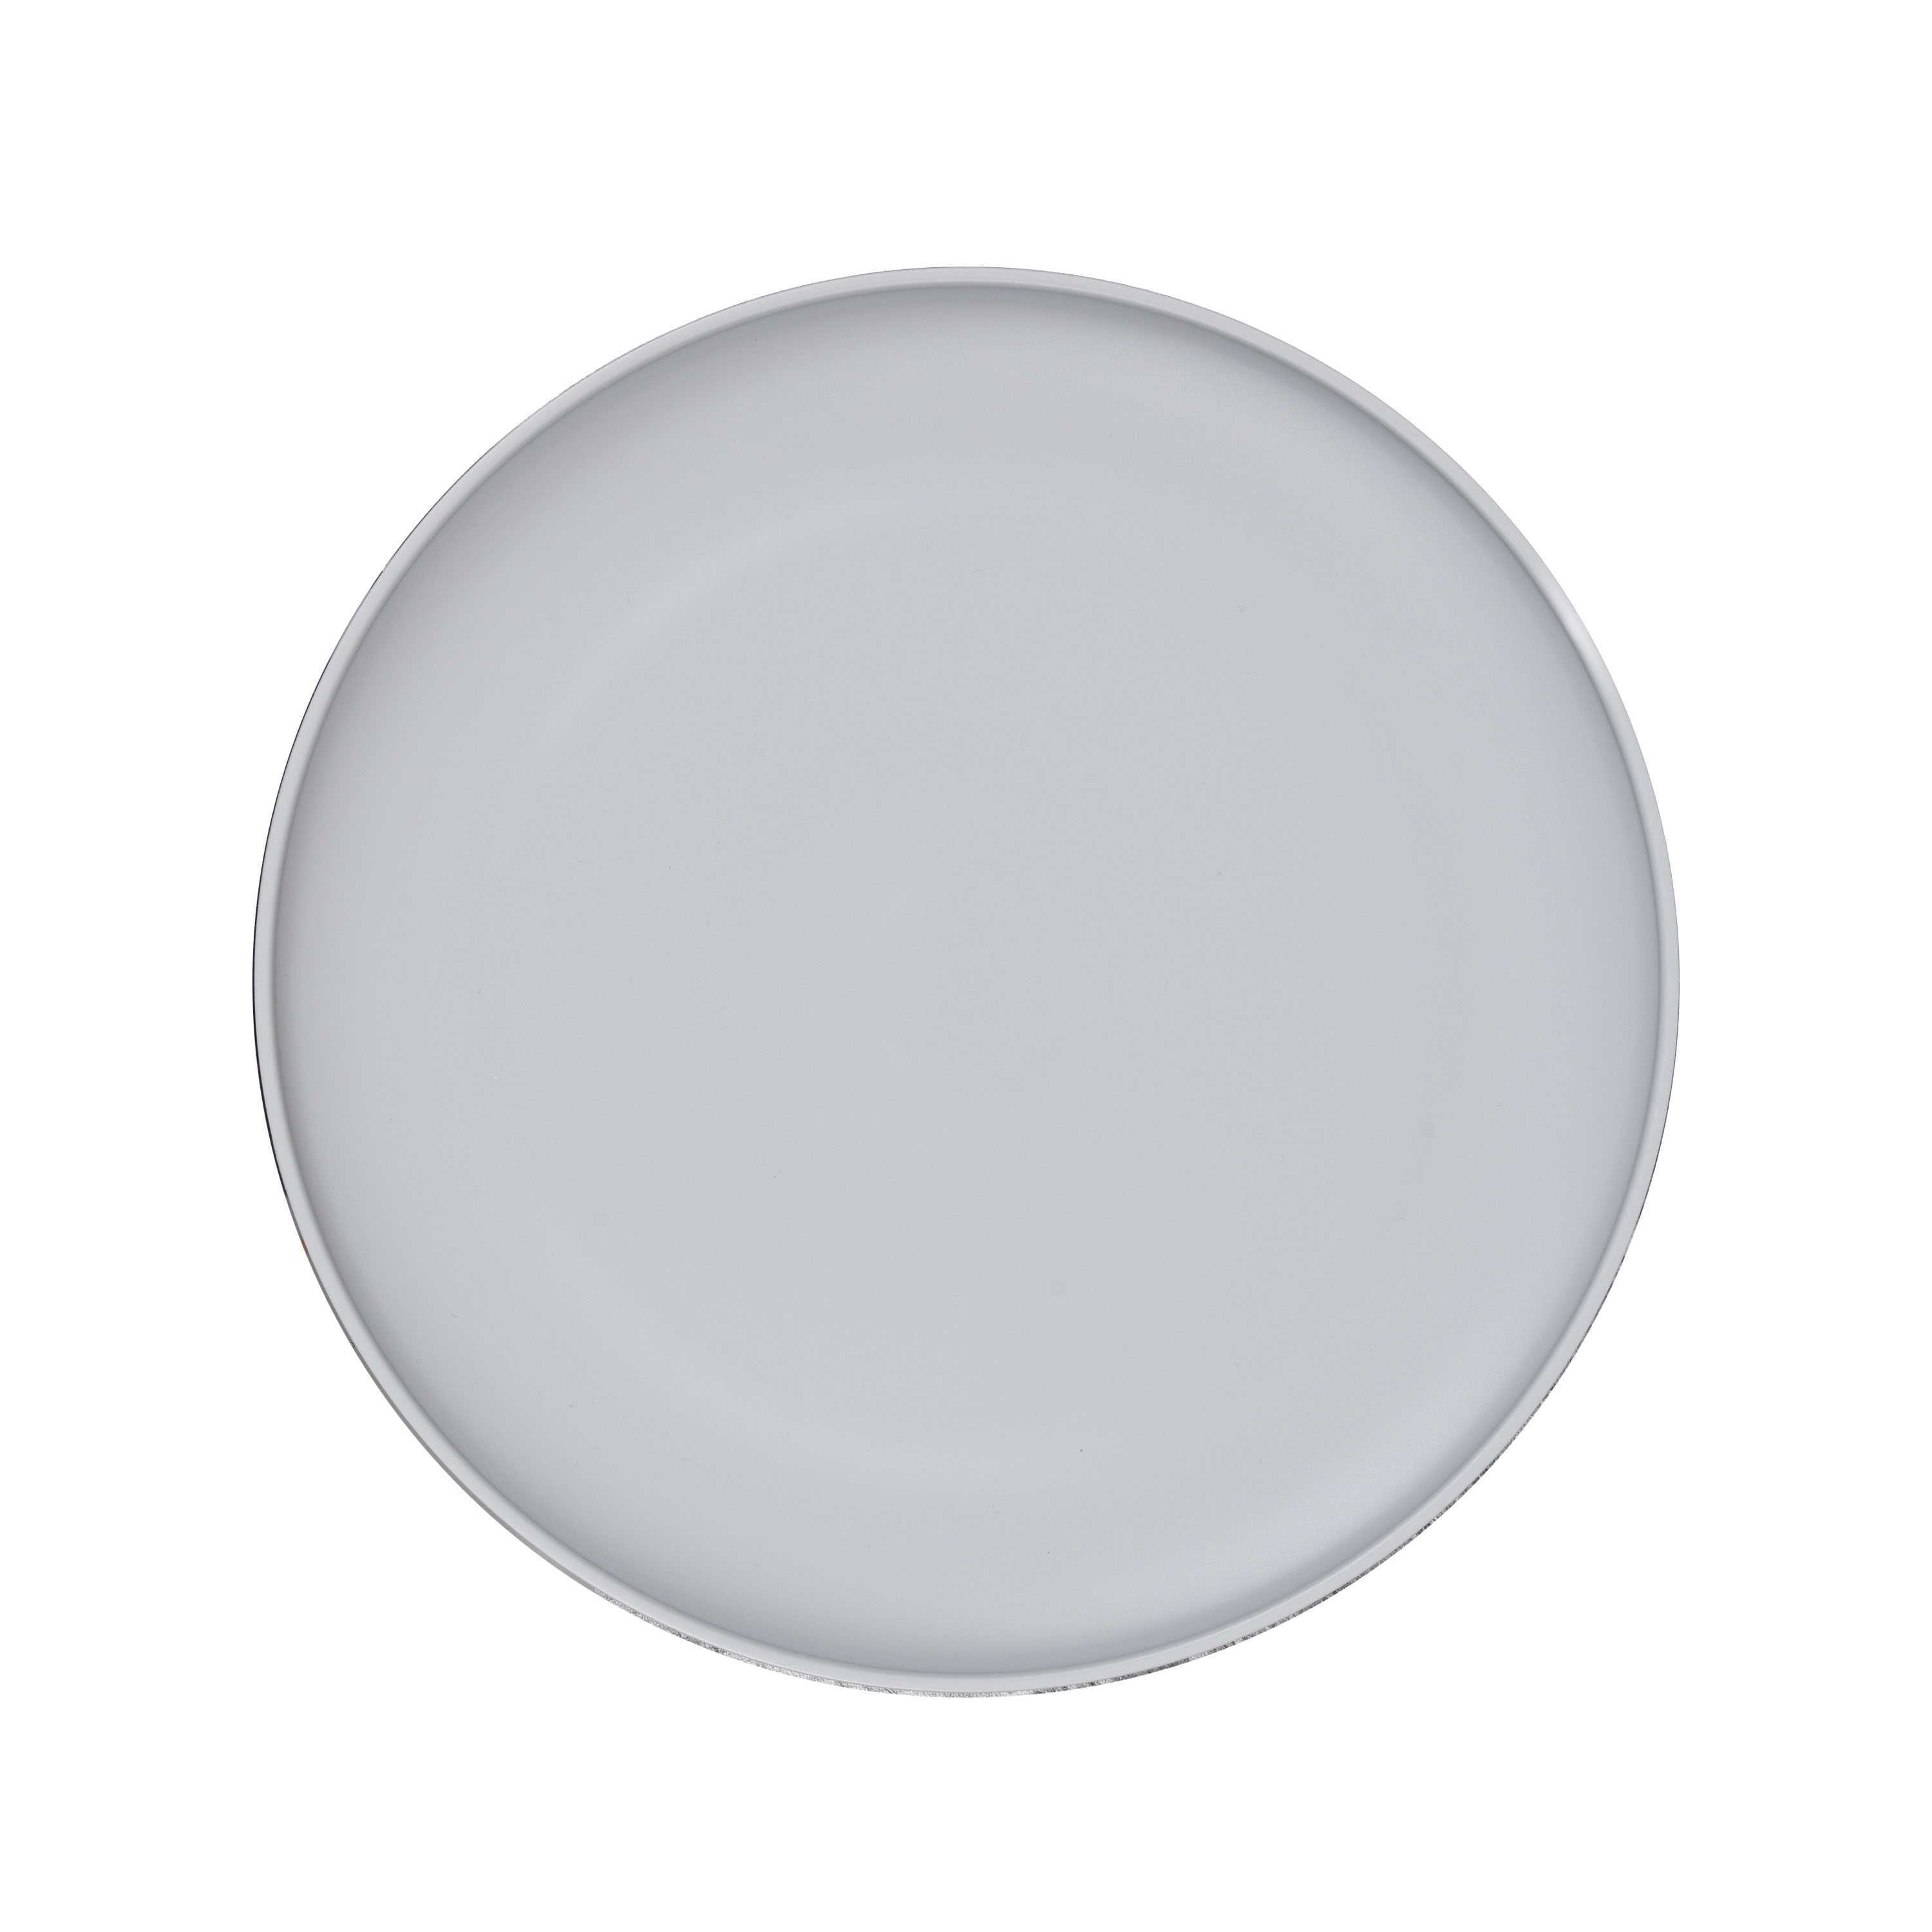 "Mainstays 10.5"" Gray Plate"